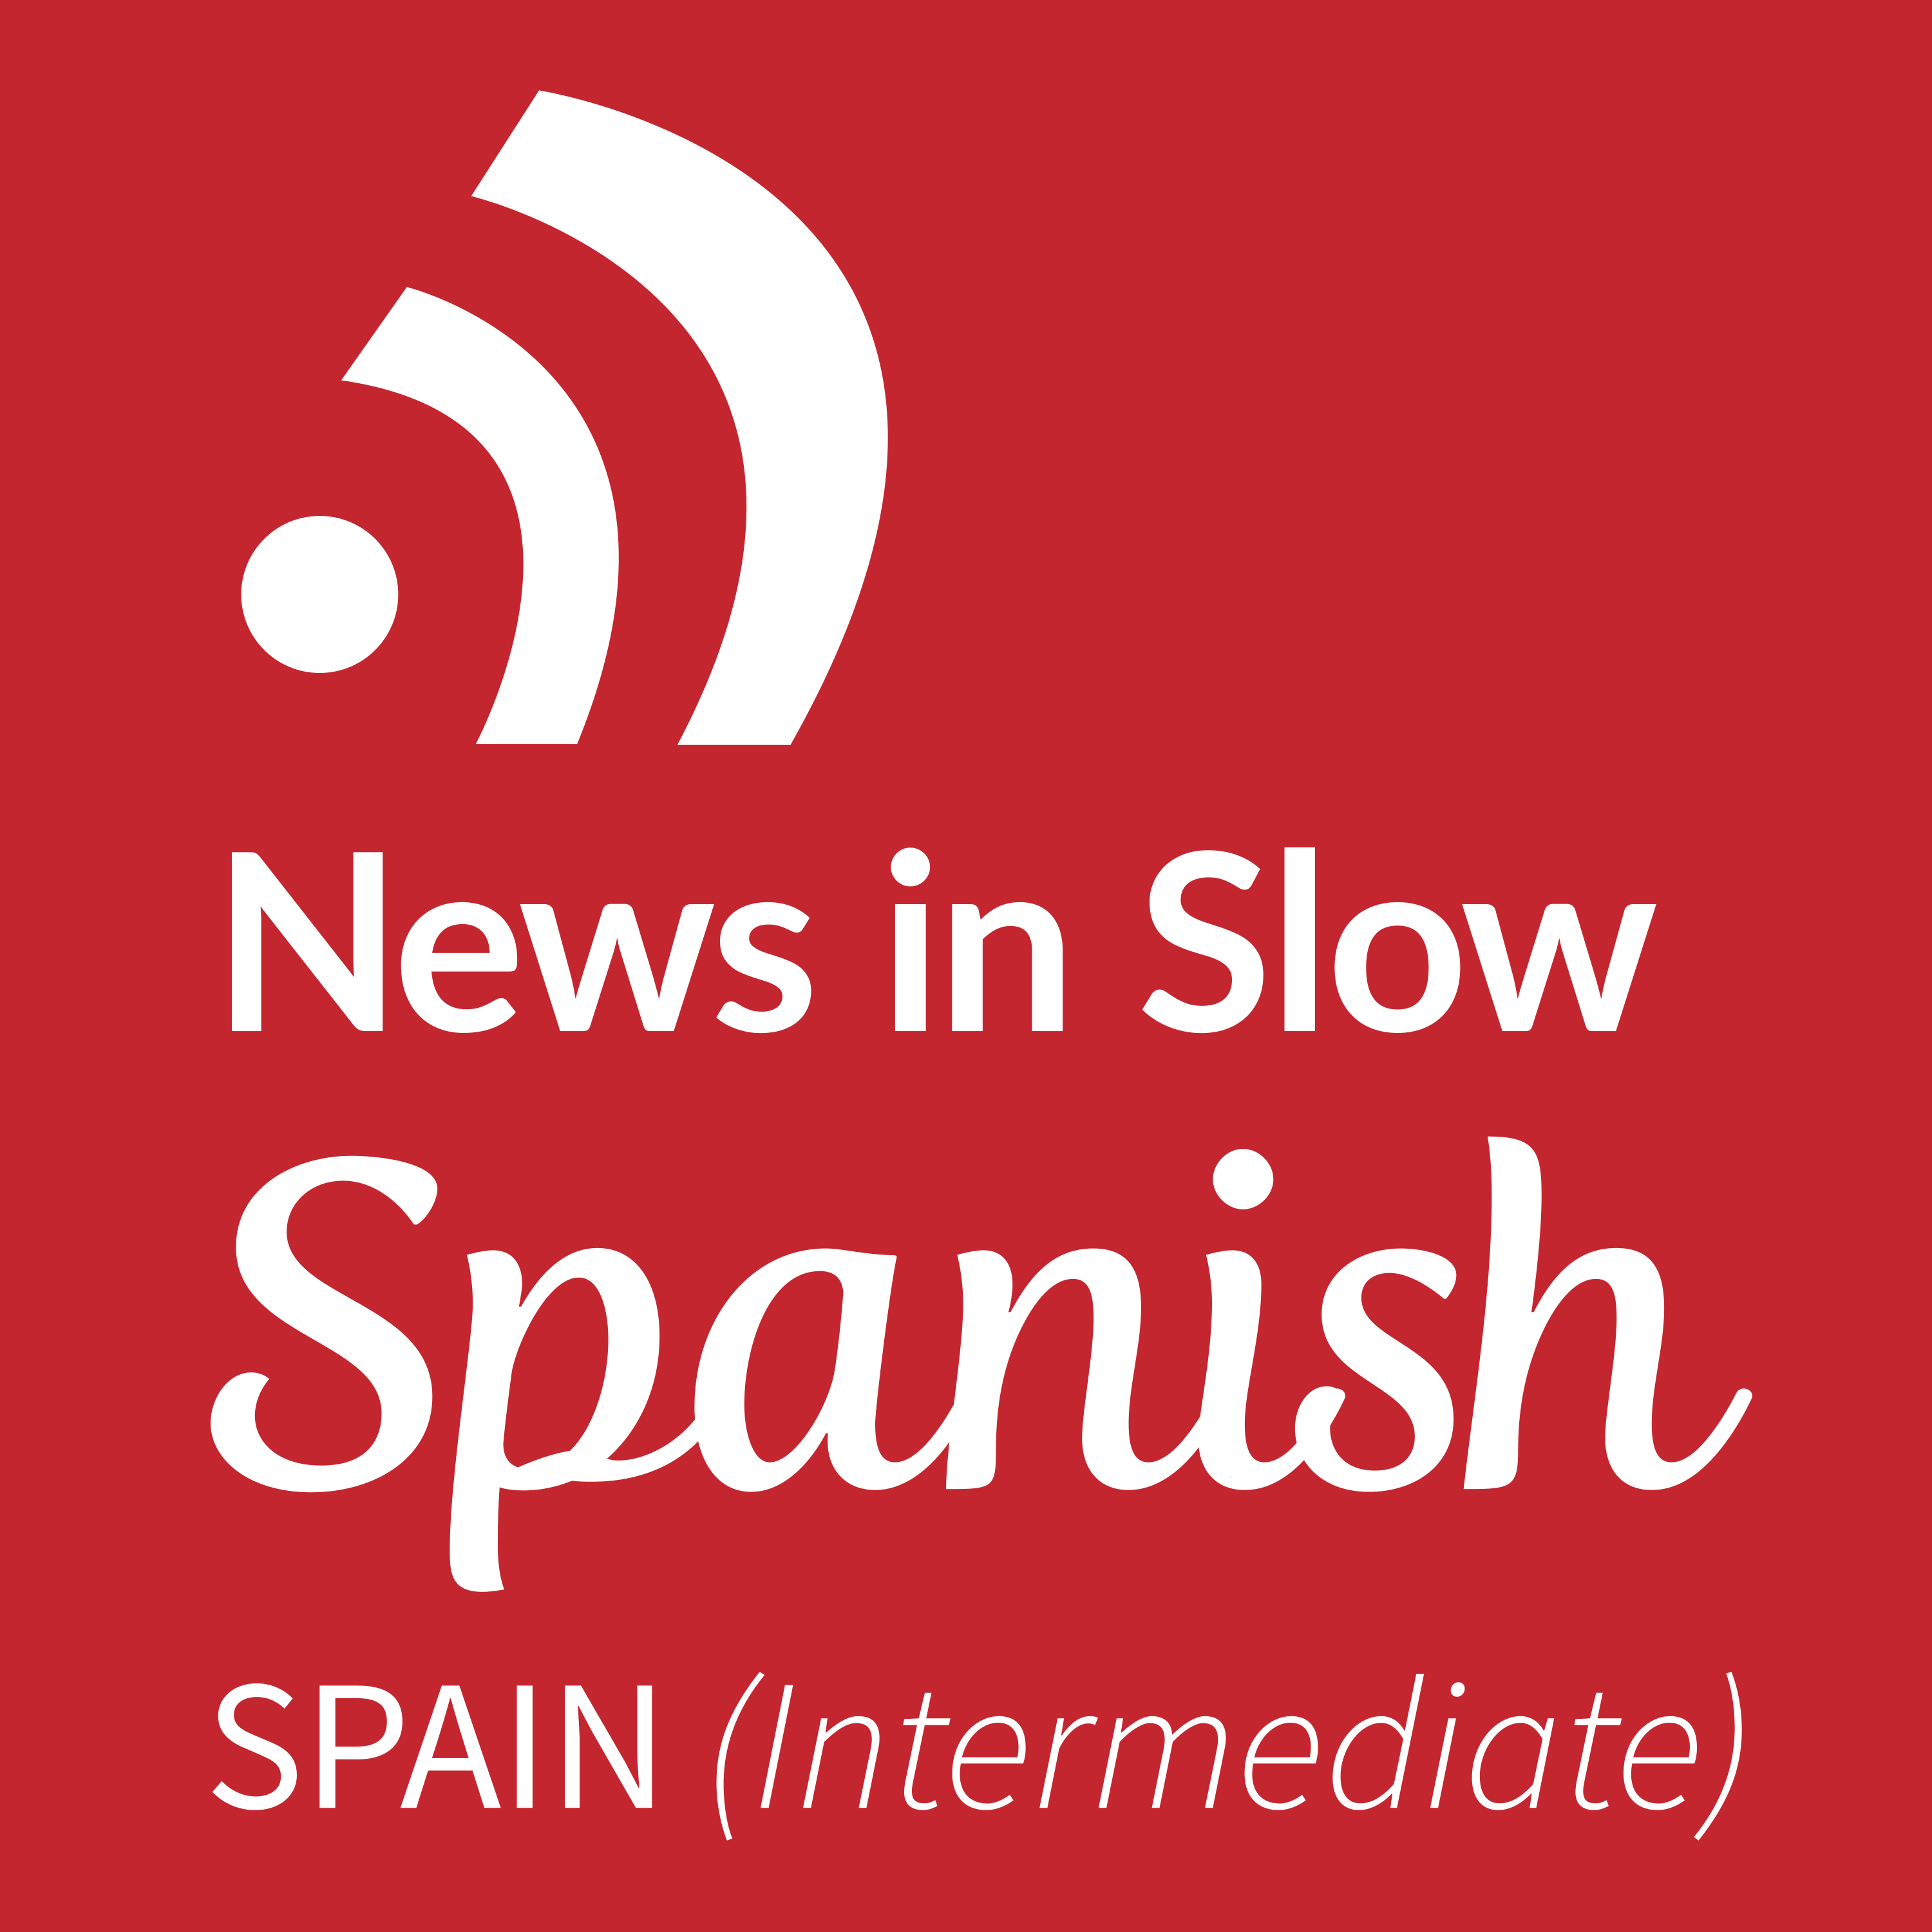 News in Slow Spanish - #373 - Language learning in the context of current events